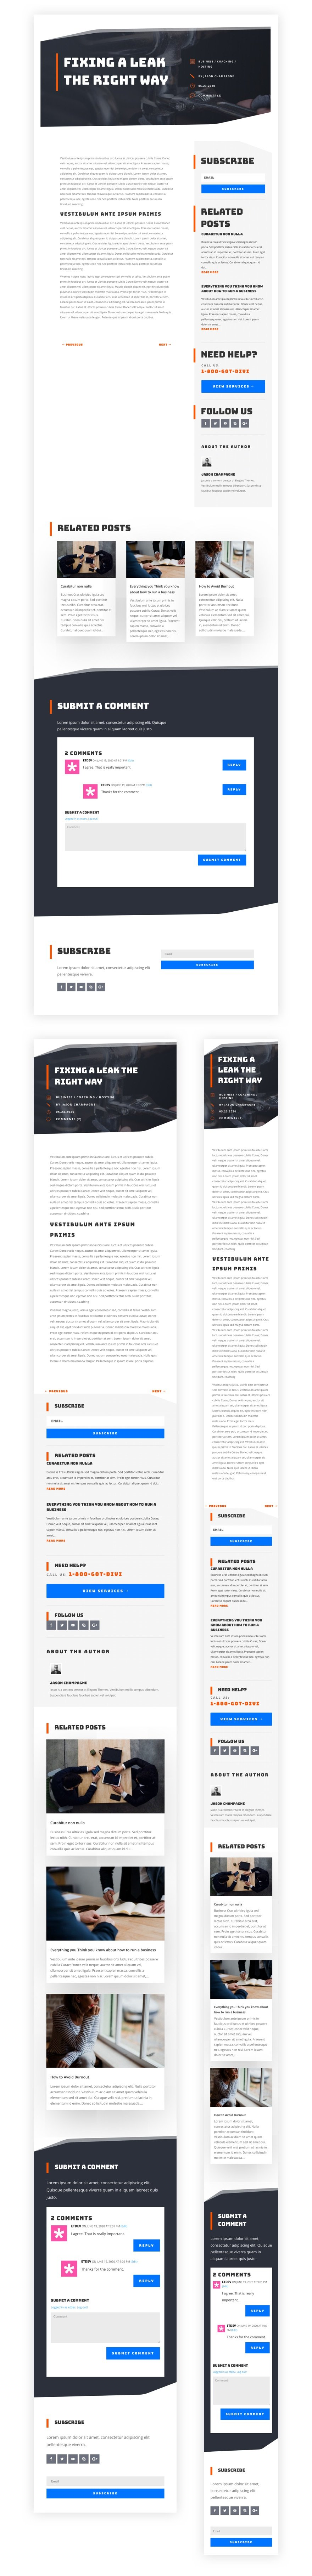 get-a-free-blog-post-template-for-divis-handyman-layout-pack Get a FREE Blog Post Template for Divi's Handyman Layout Pack